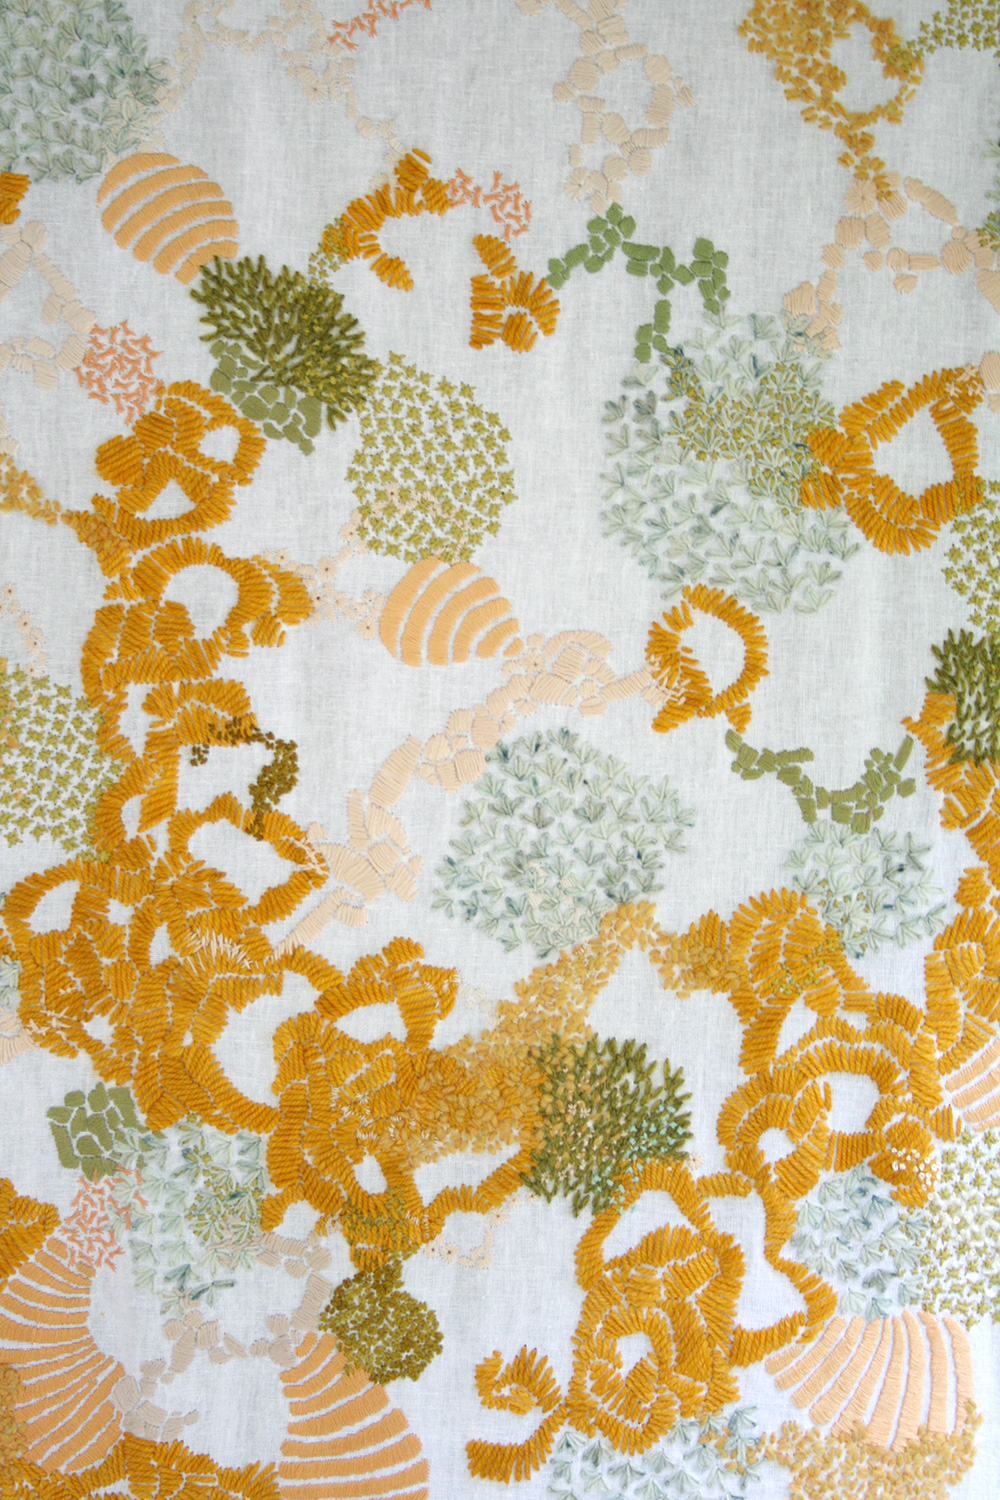 Detail of the Gold, Grass and Peach Embroidered Tapestry by Amanda Farquharson